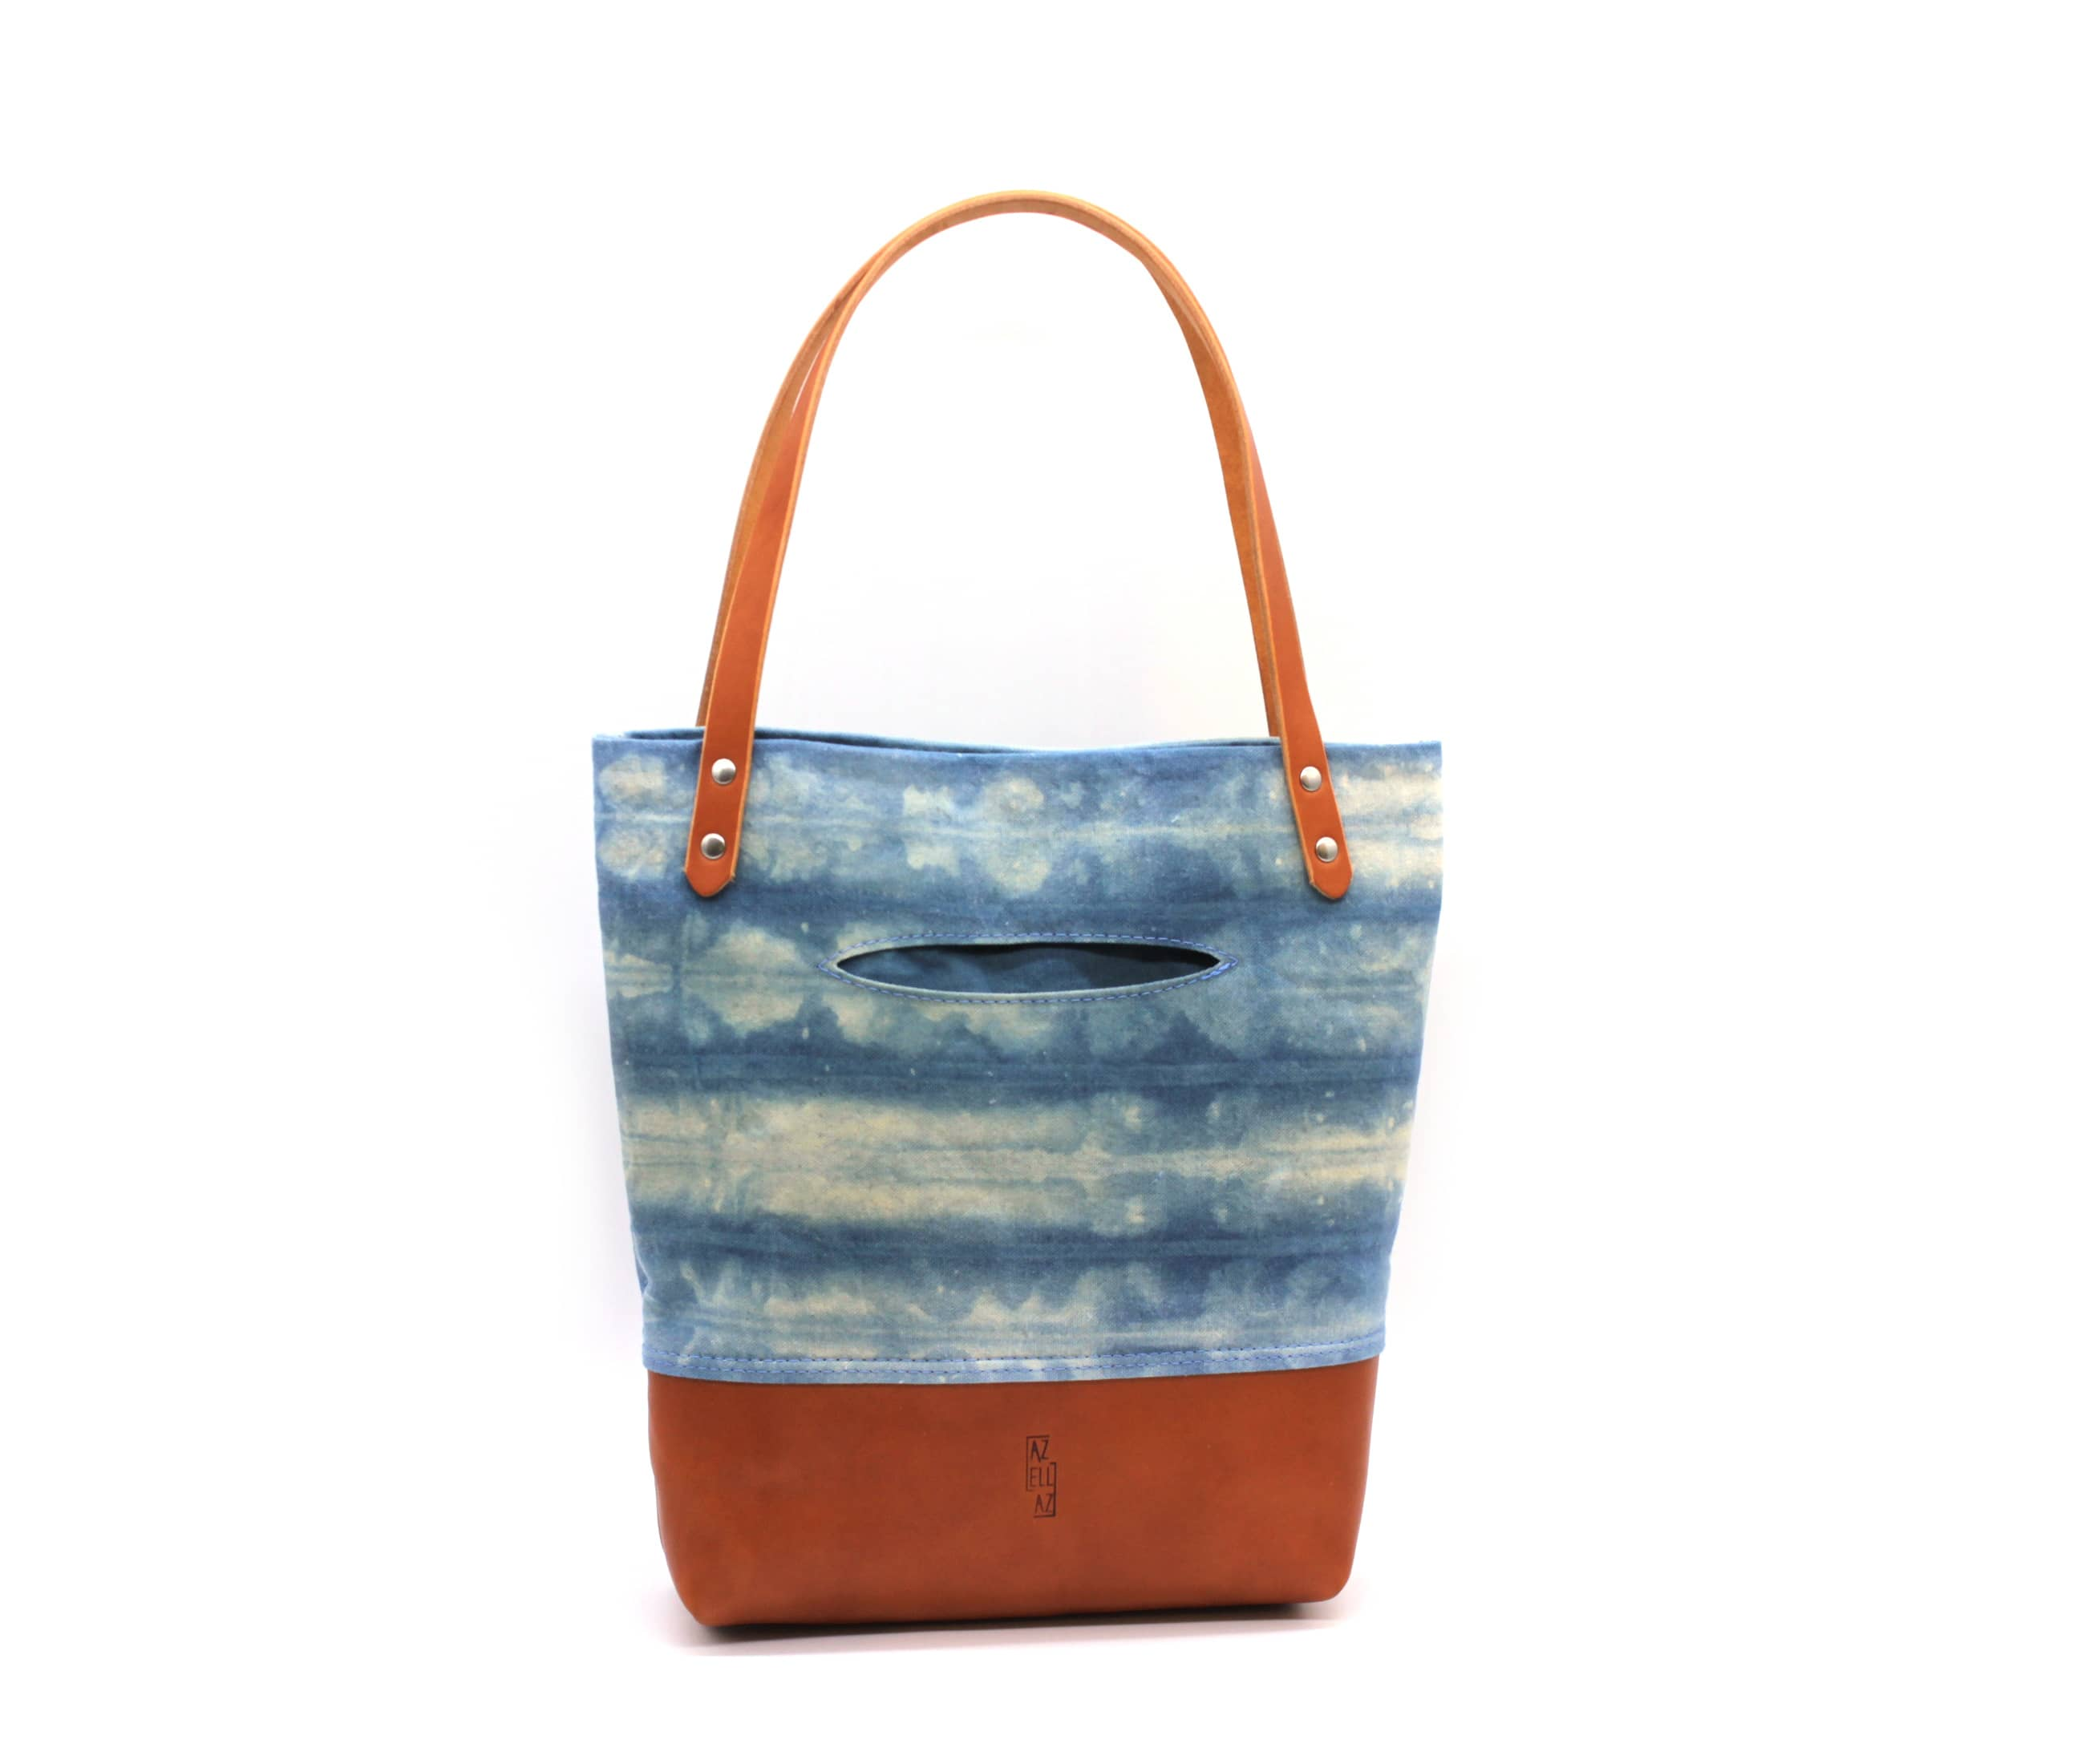 /az0062005-01_fxg1qq.jpg view of the Indigo Shibori Small Tote / Tan Leather by Azellaz